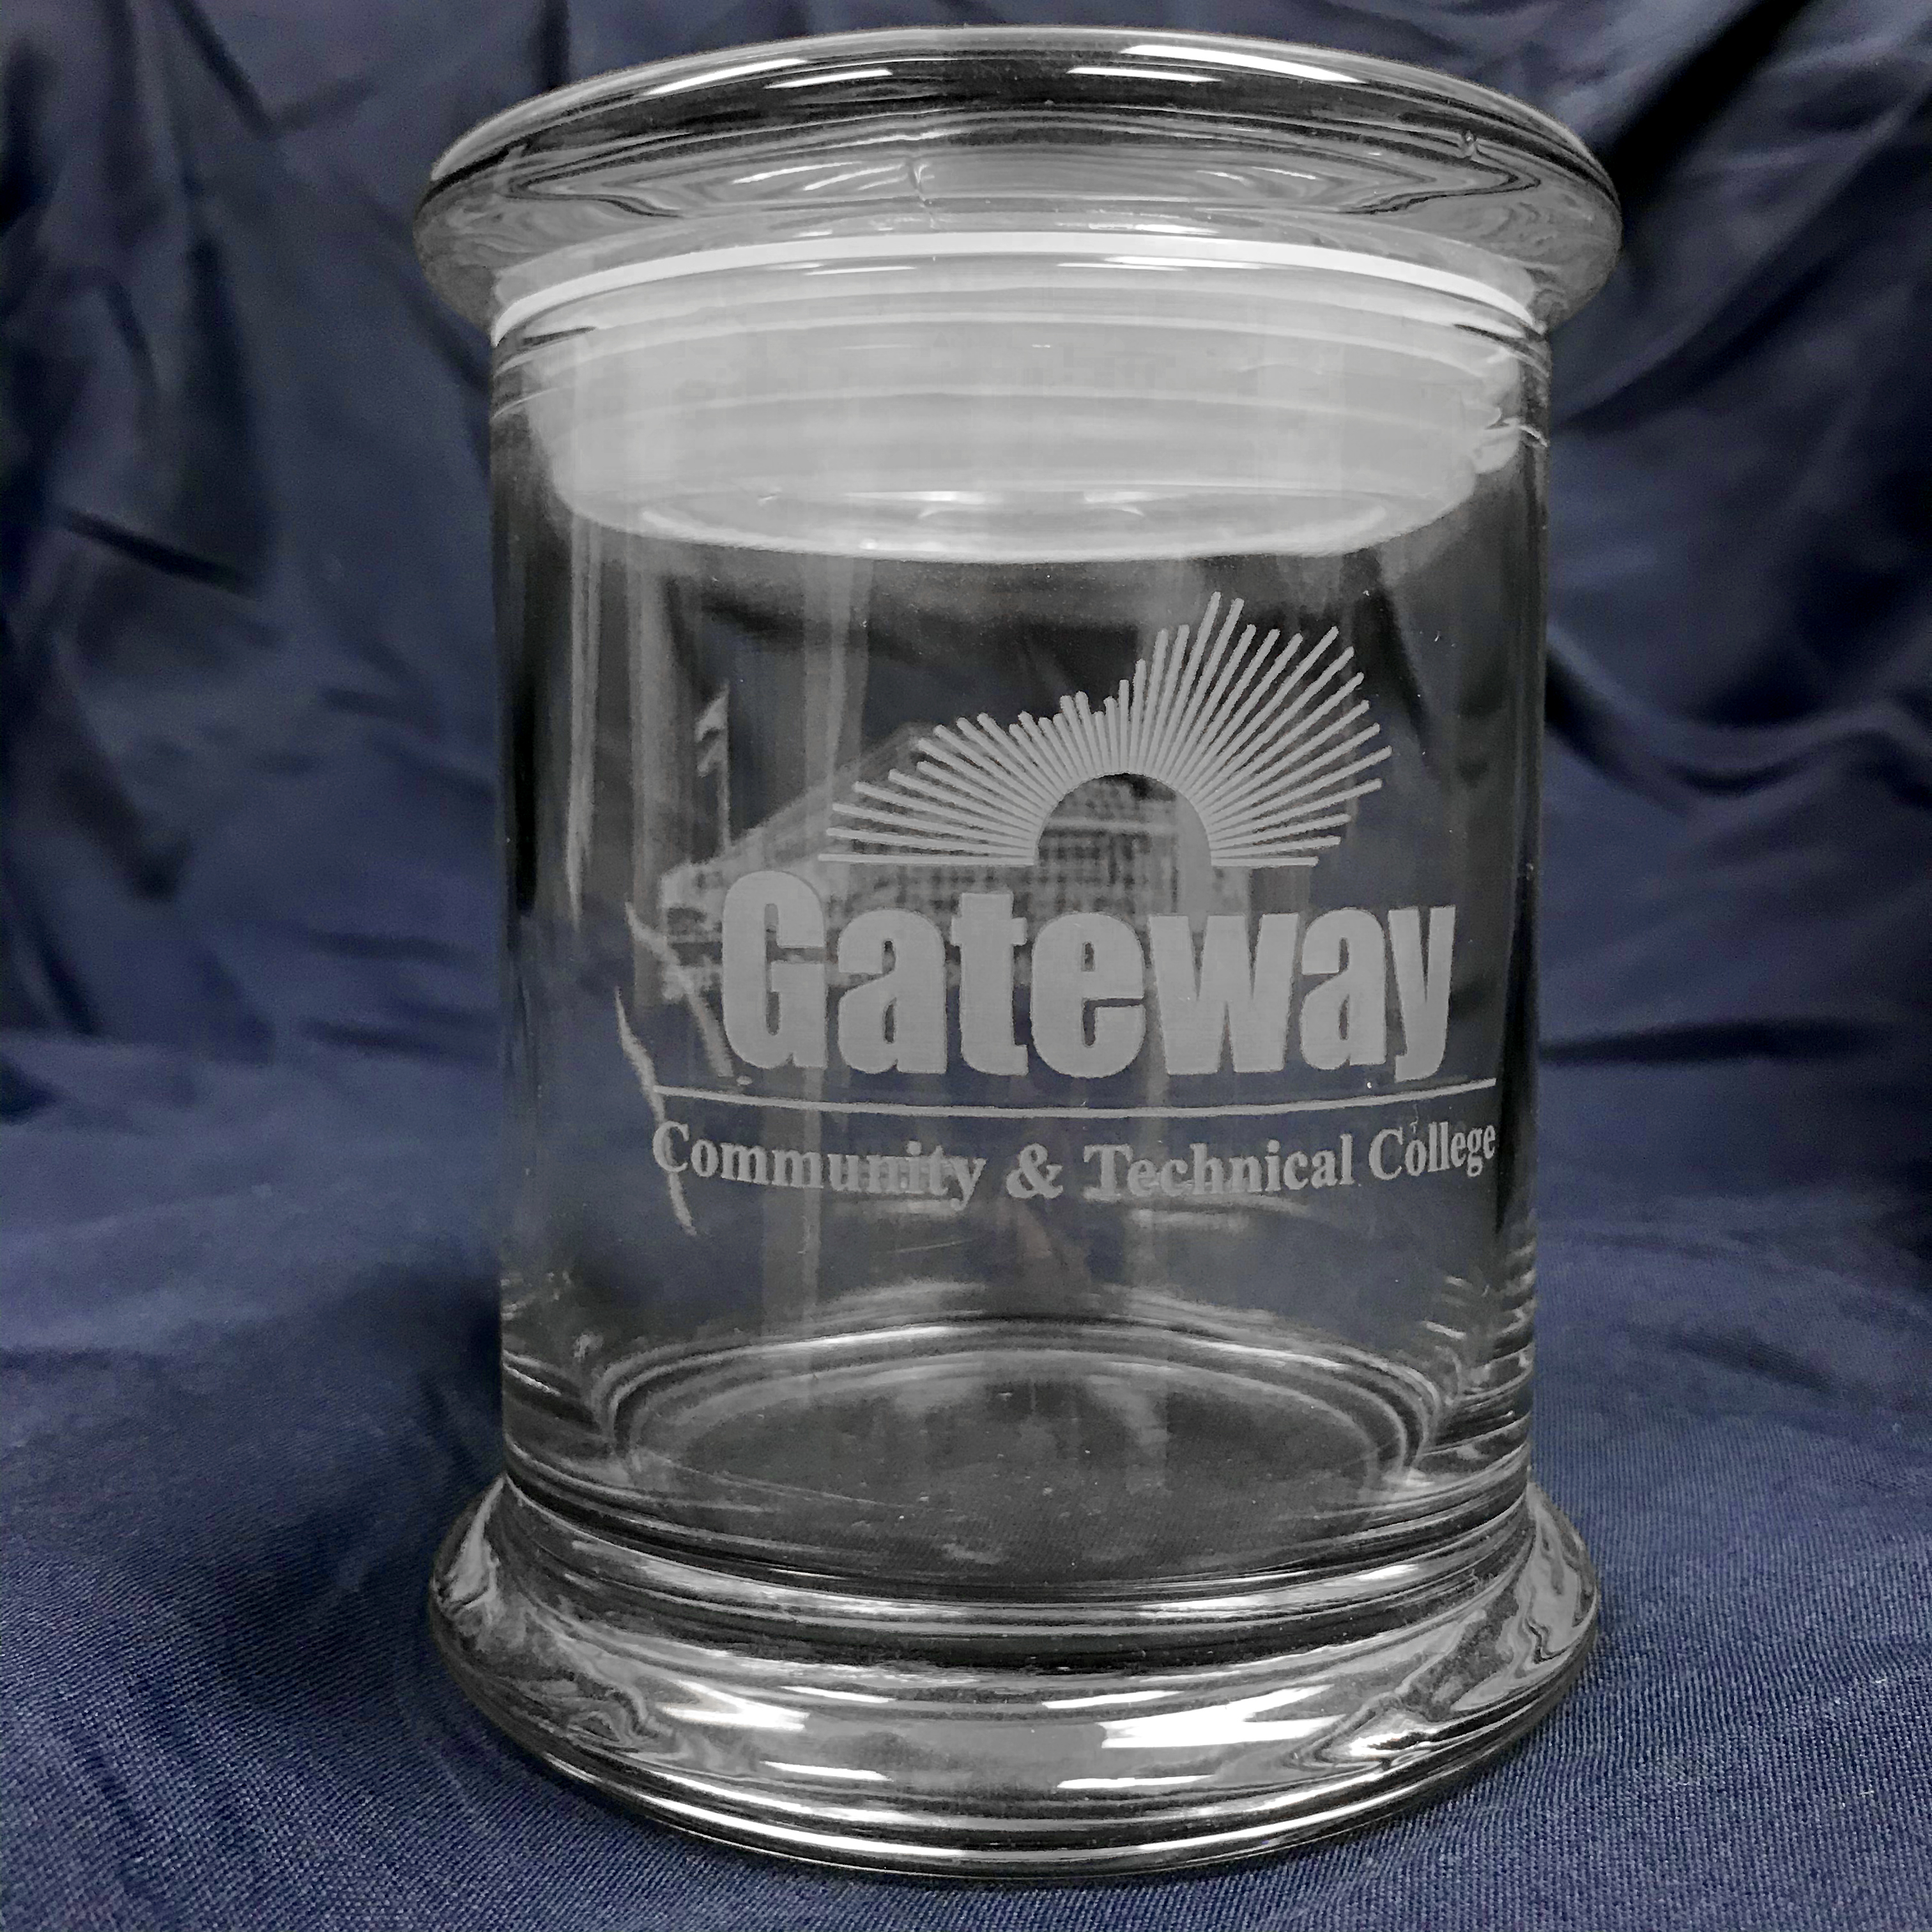 Gateway Community College glass container.